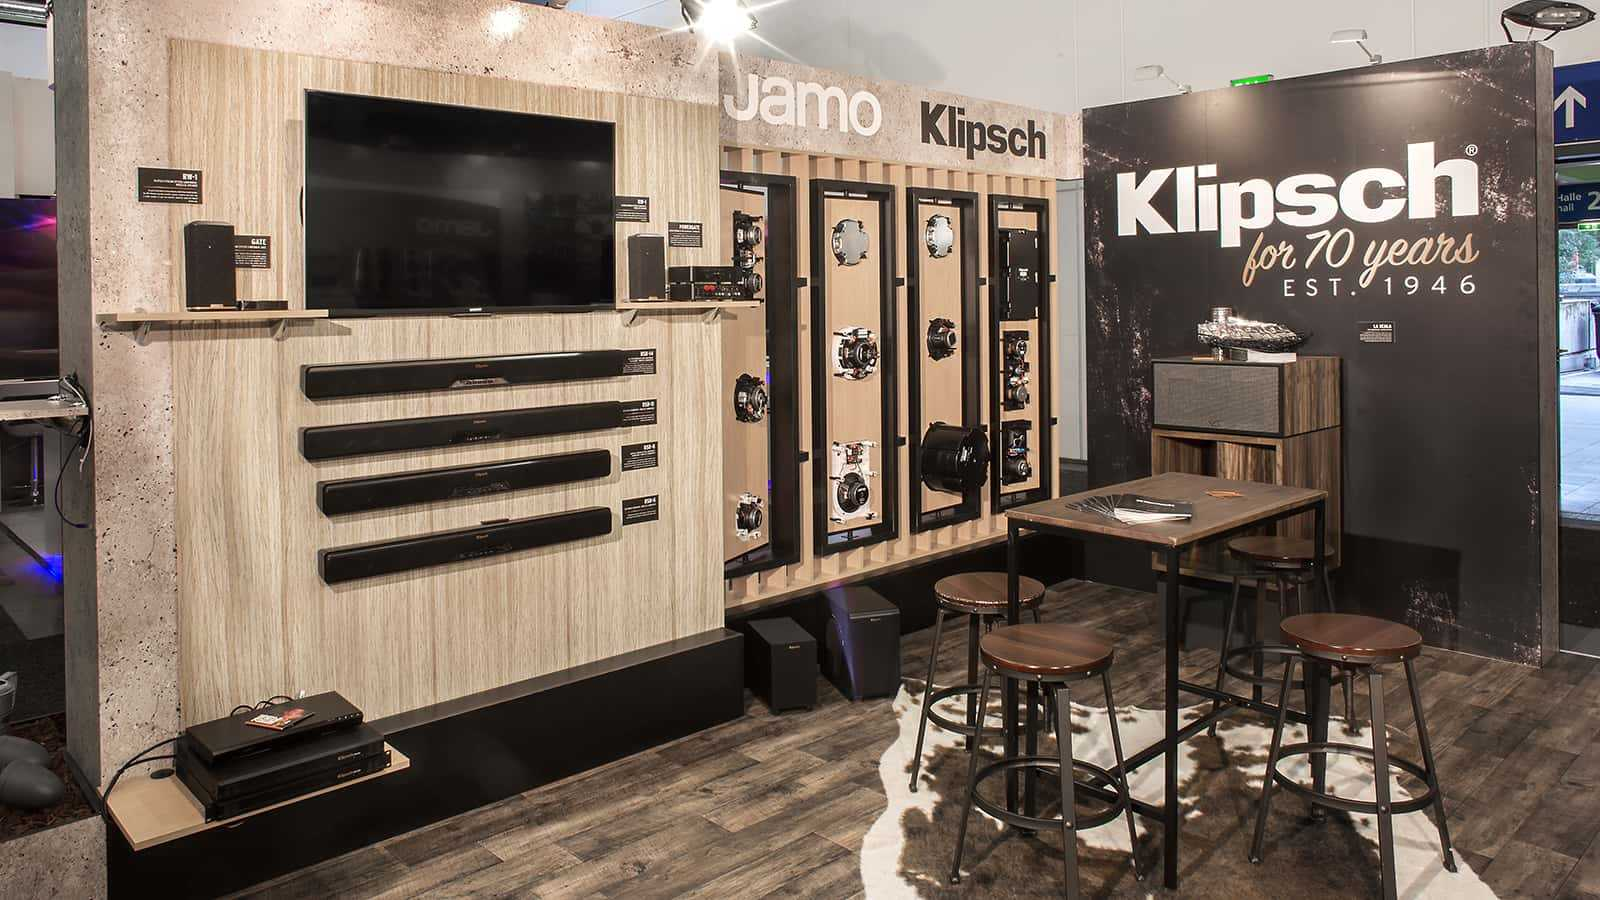 Meeting area of Klipsch IFA Berlin 2017 trade show exhibit.